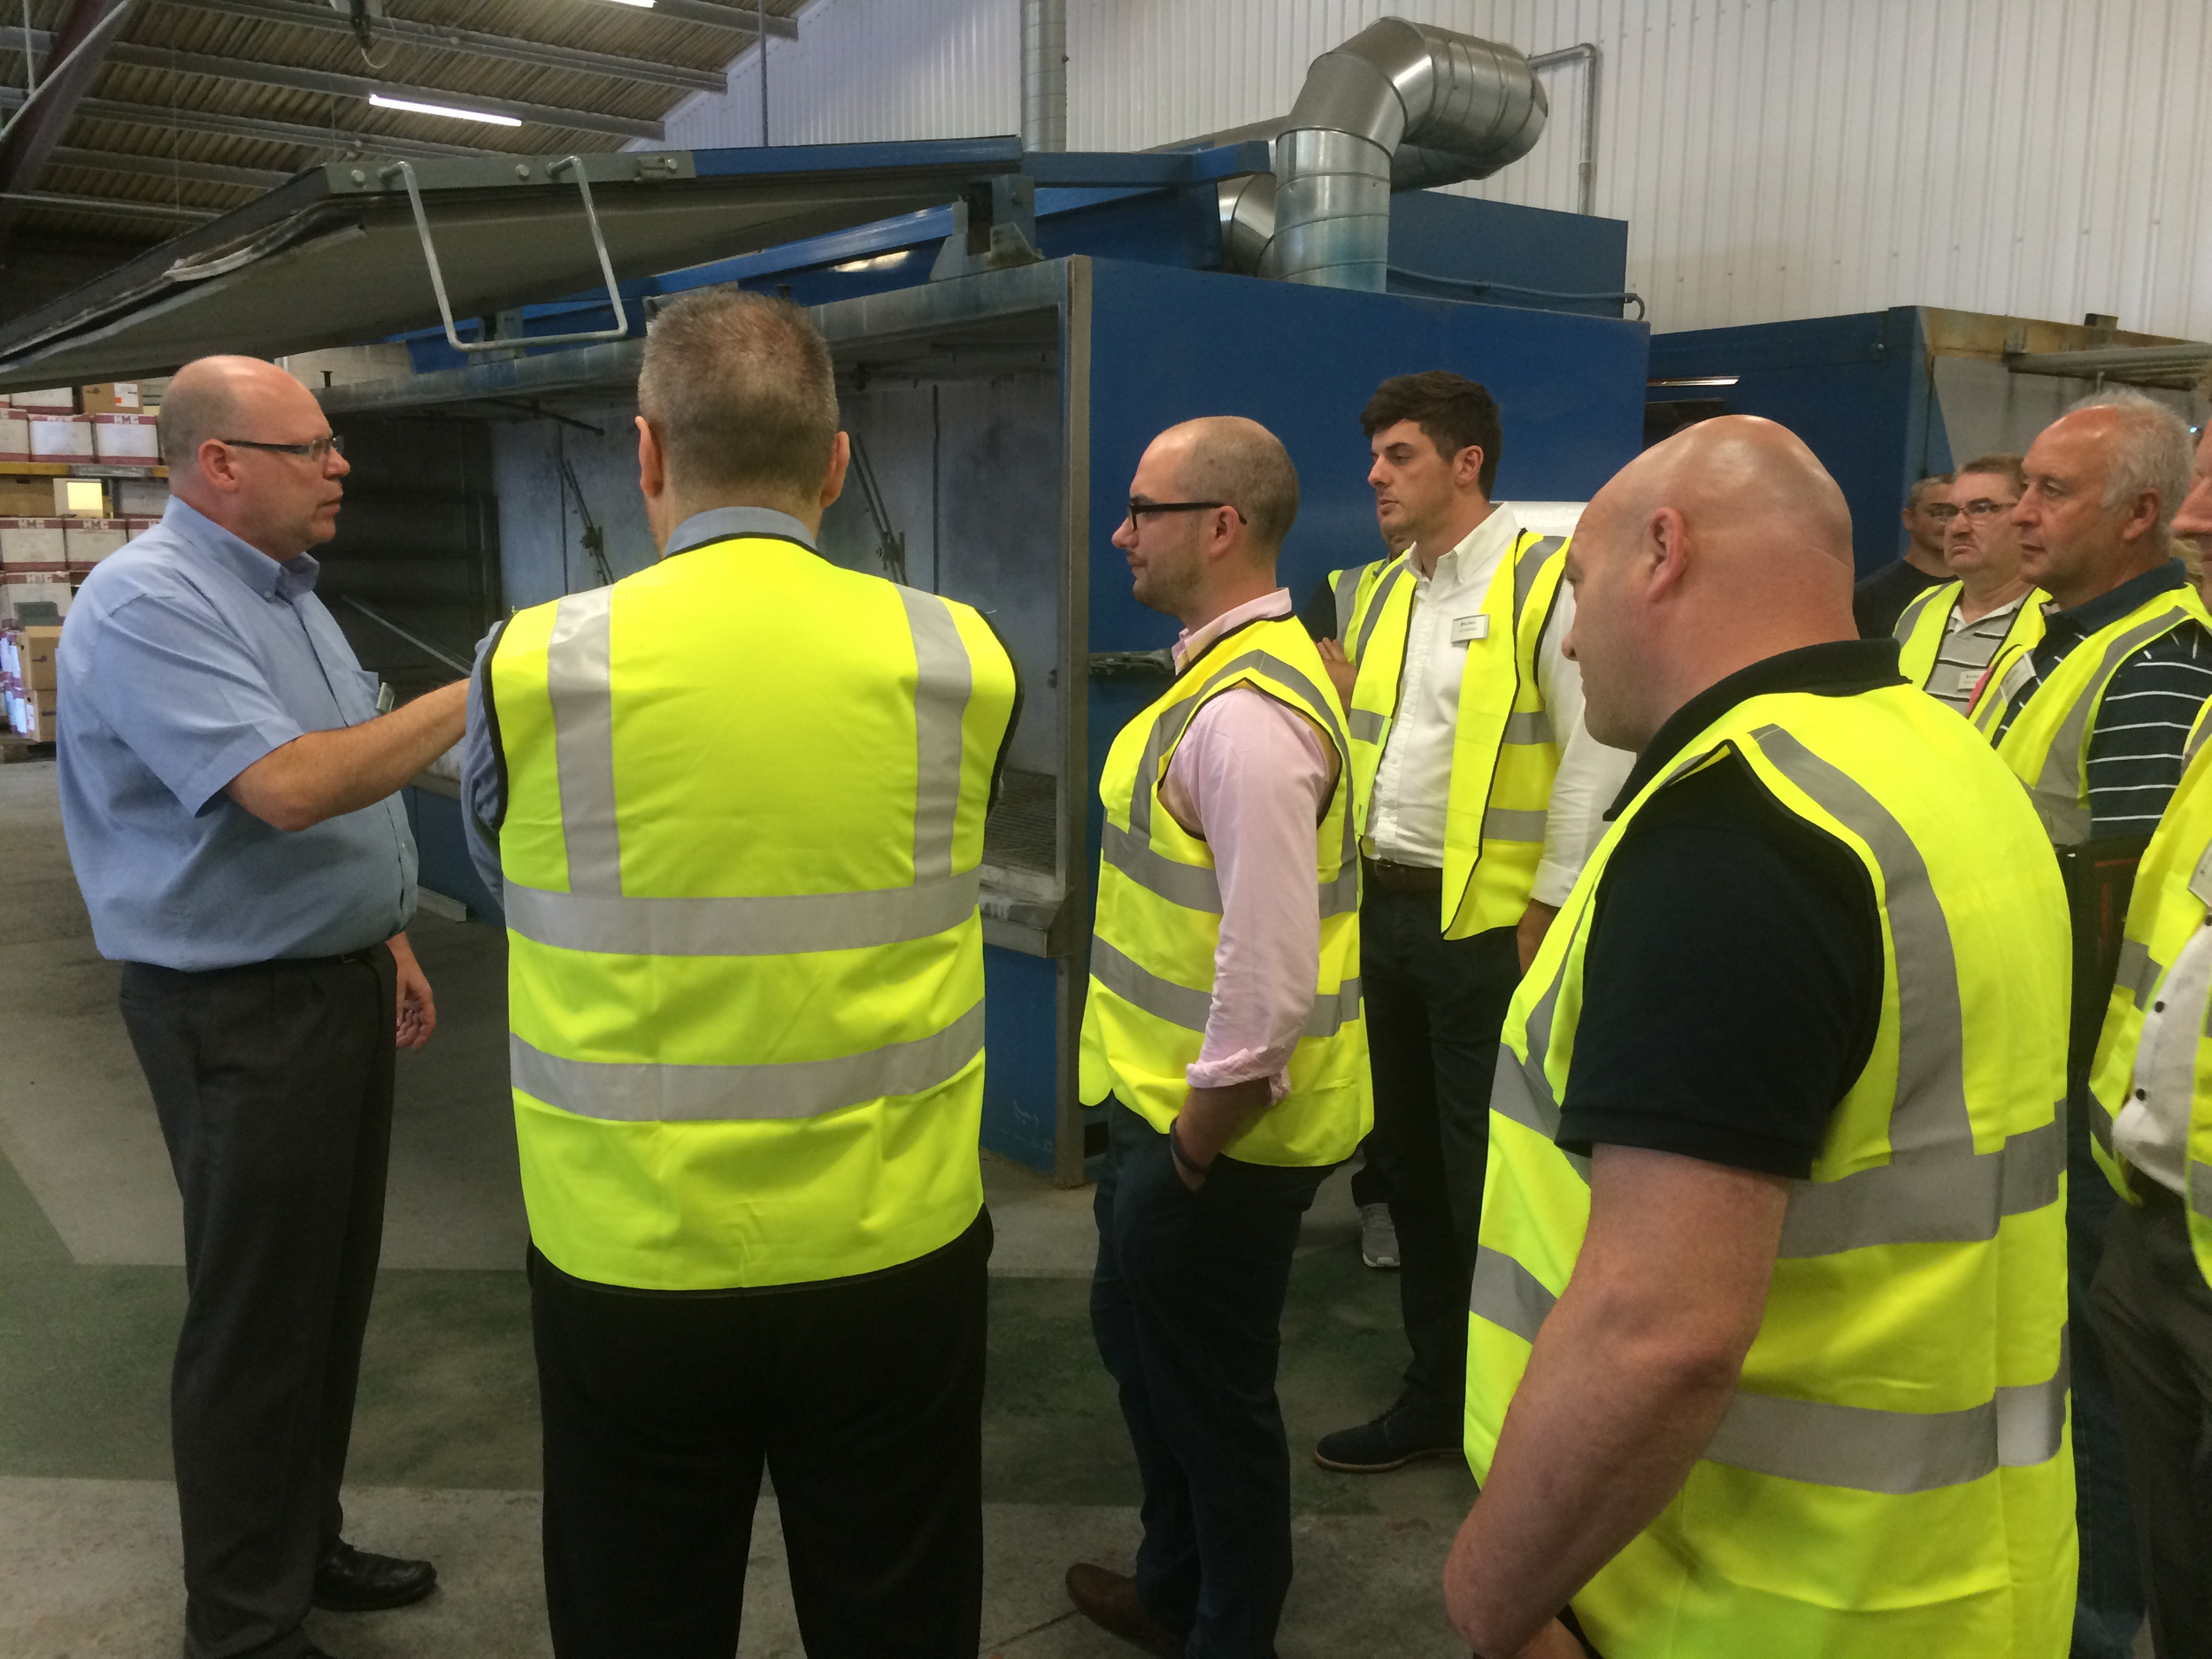 Garry Peake, Manager of Aluroll's Steelroll range, shows visitorsthe Powder Coating facilities